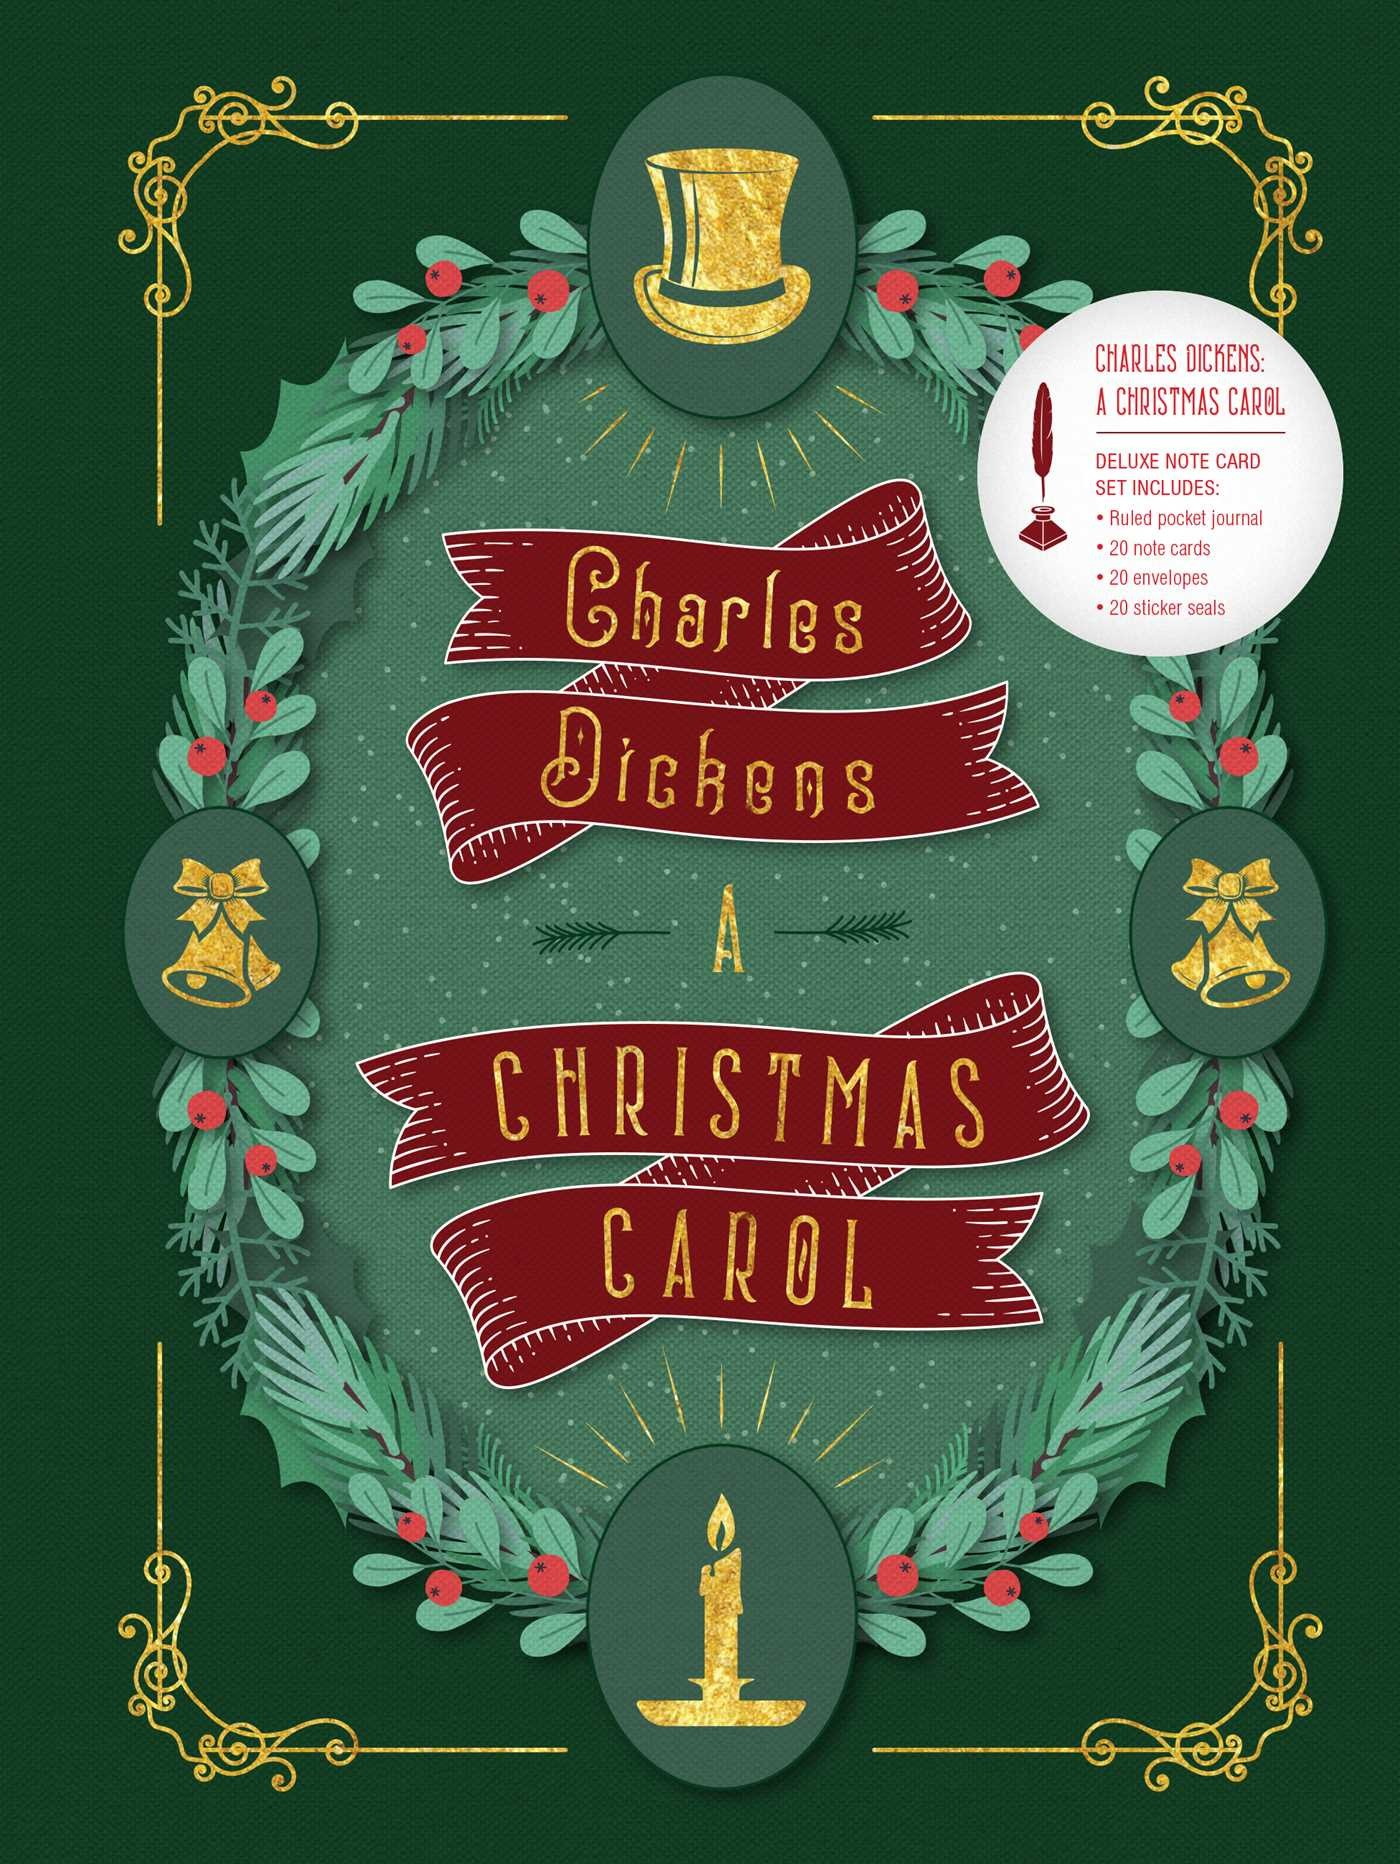 charles dickens a christmas carol deluxe note card set with keepsake book box 9781683833093in01